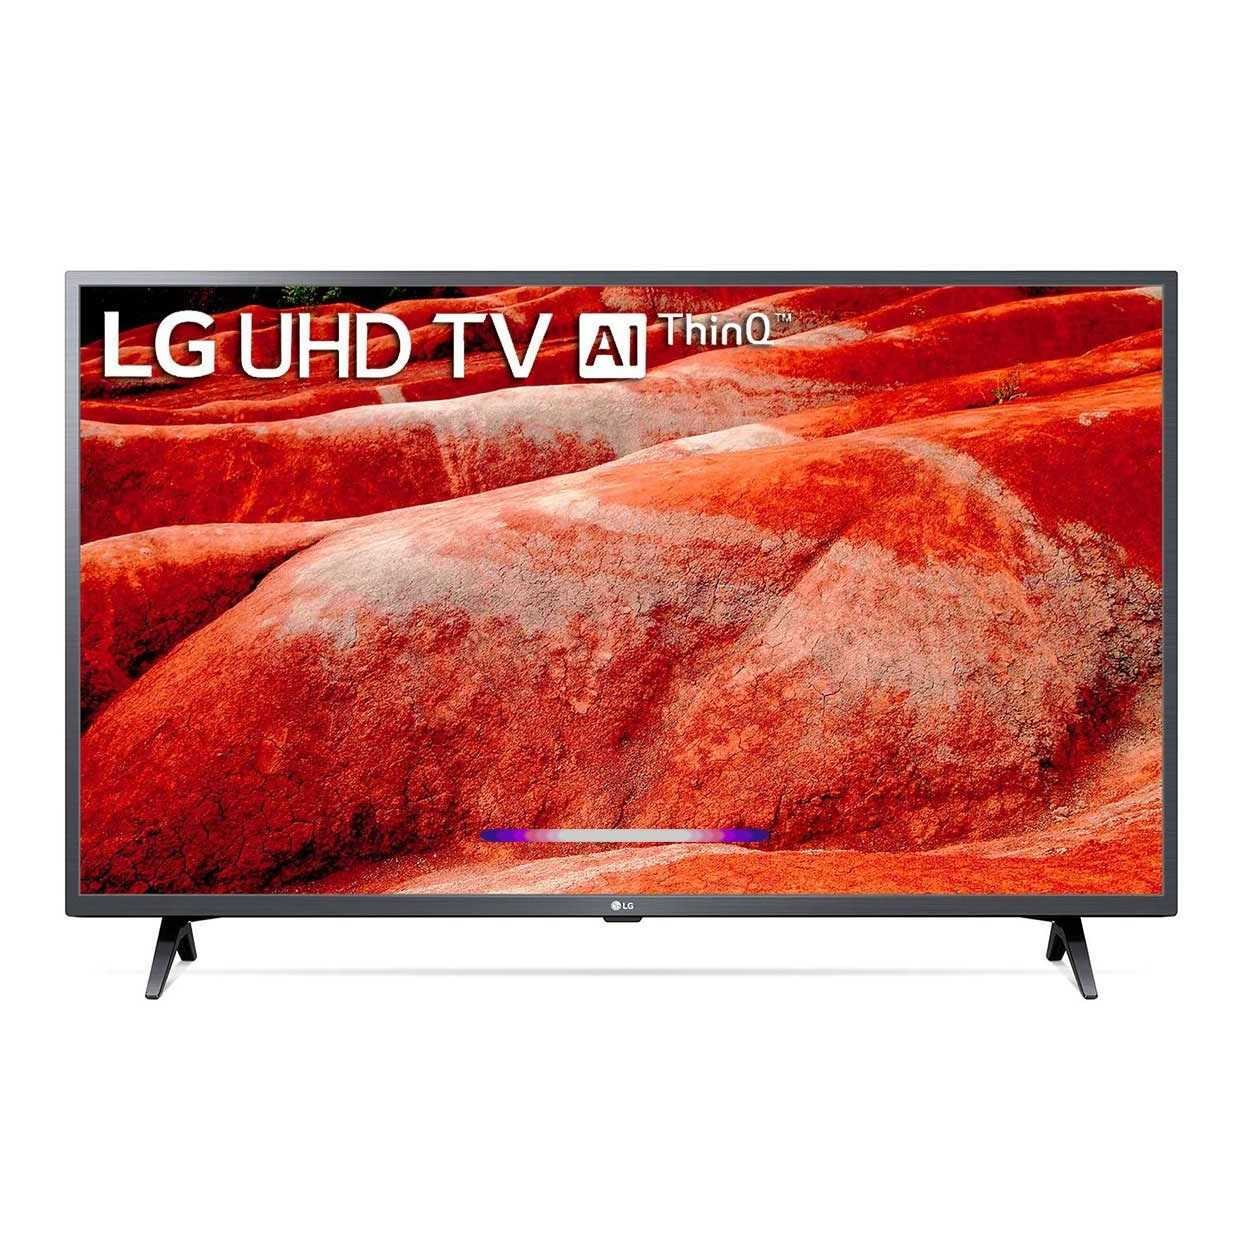 LG 50UM7700PTA 50 Inch 4K Ultra HD Smart LED Television